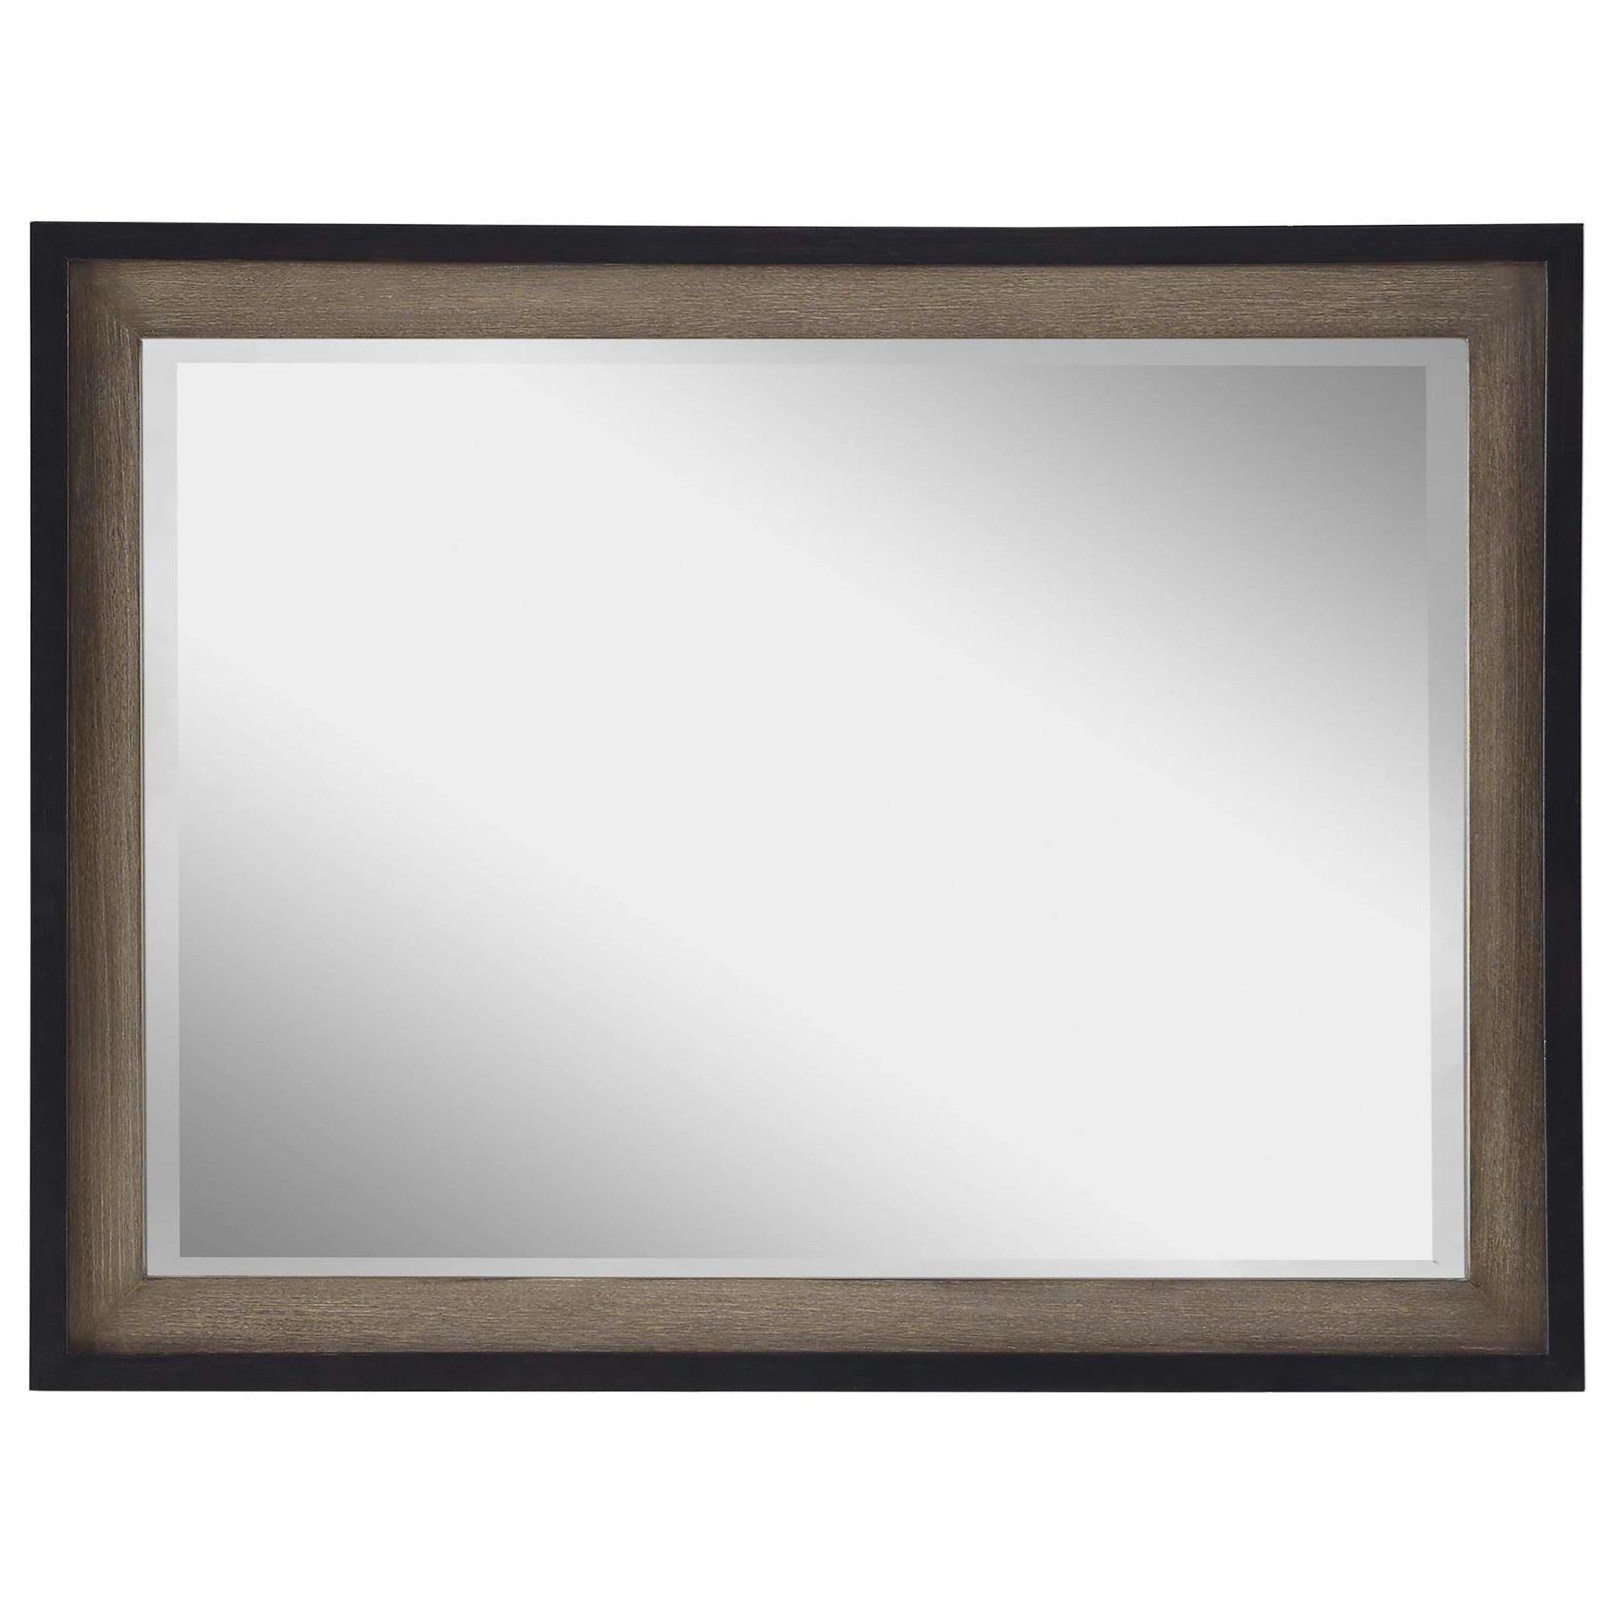 Morris Home Torrance Torrance Mirror - Item Number: 5322032